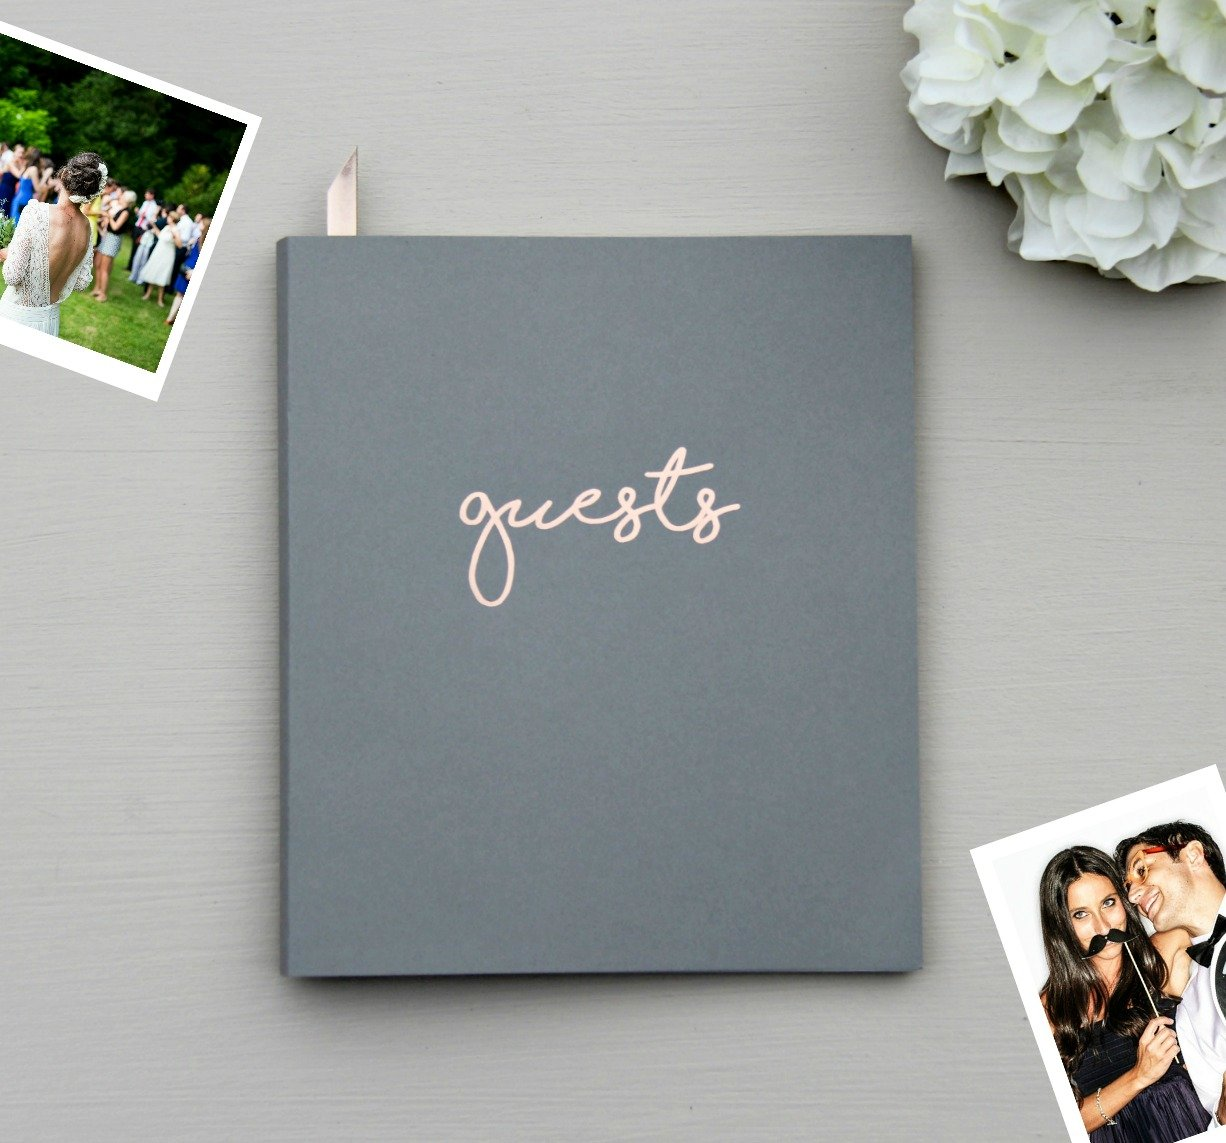 """Photo Guest Book, Softcover Flat-Lay Cardstock, Small 8.5""""x7"""", 65 Grey Sheets (130 pgs) Birthday Guest Book Wedding Guest Book Photobooth Guest Book Instax Guest Book Quinceanera Rose Gold Grey"""